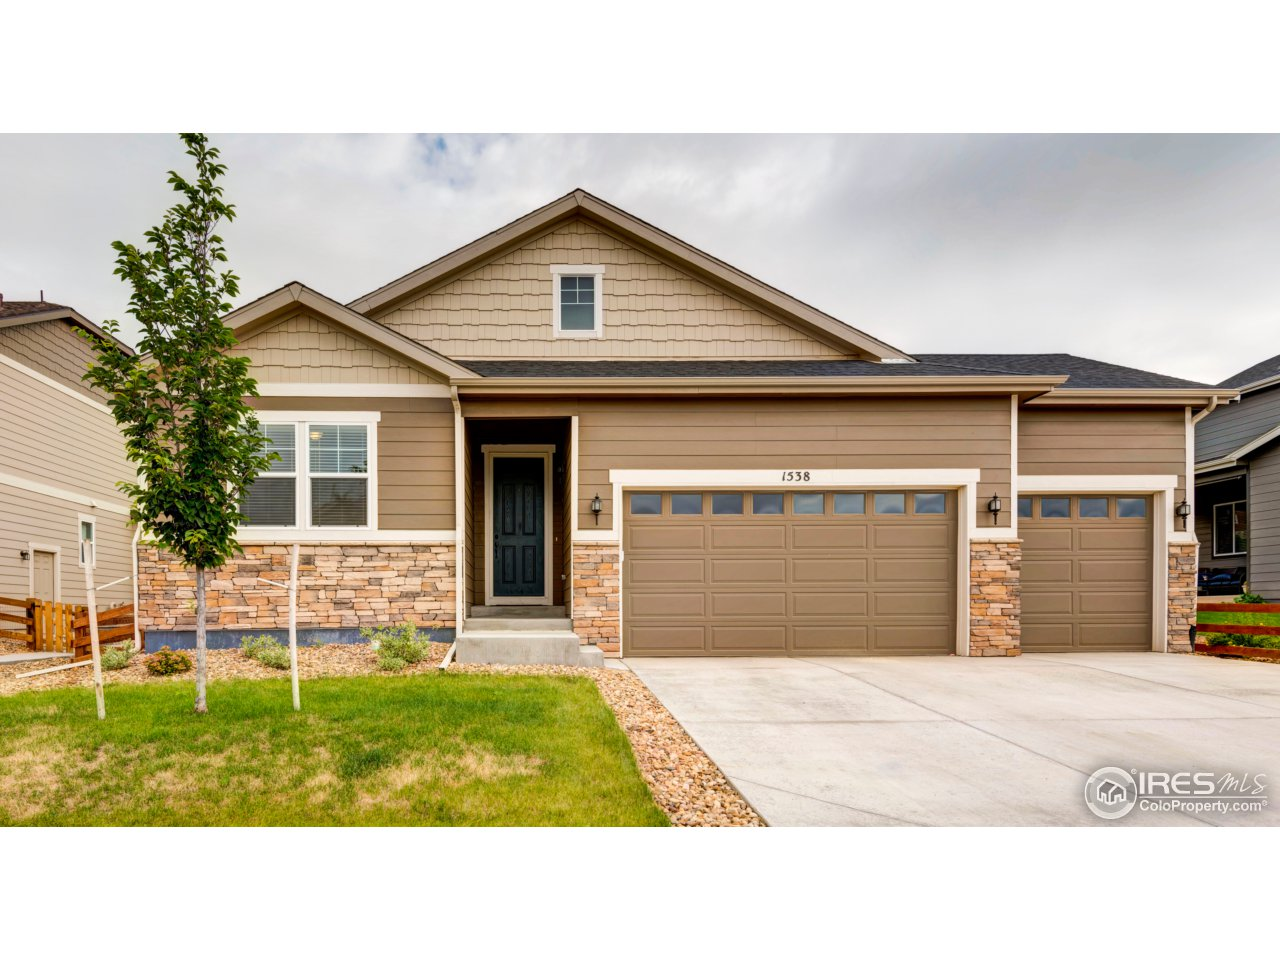 1538 Brolien Dr, Windsor, CO 80550